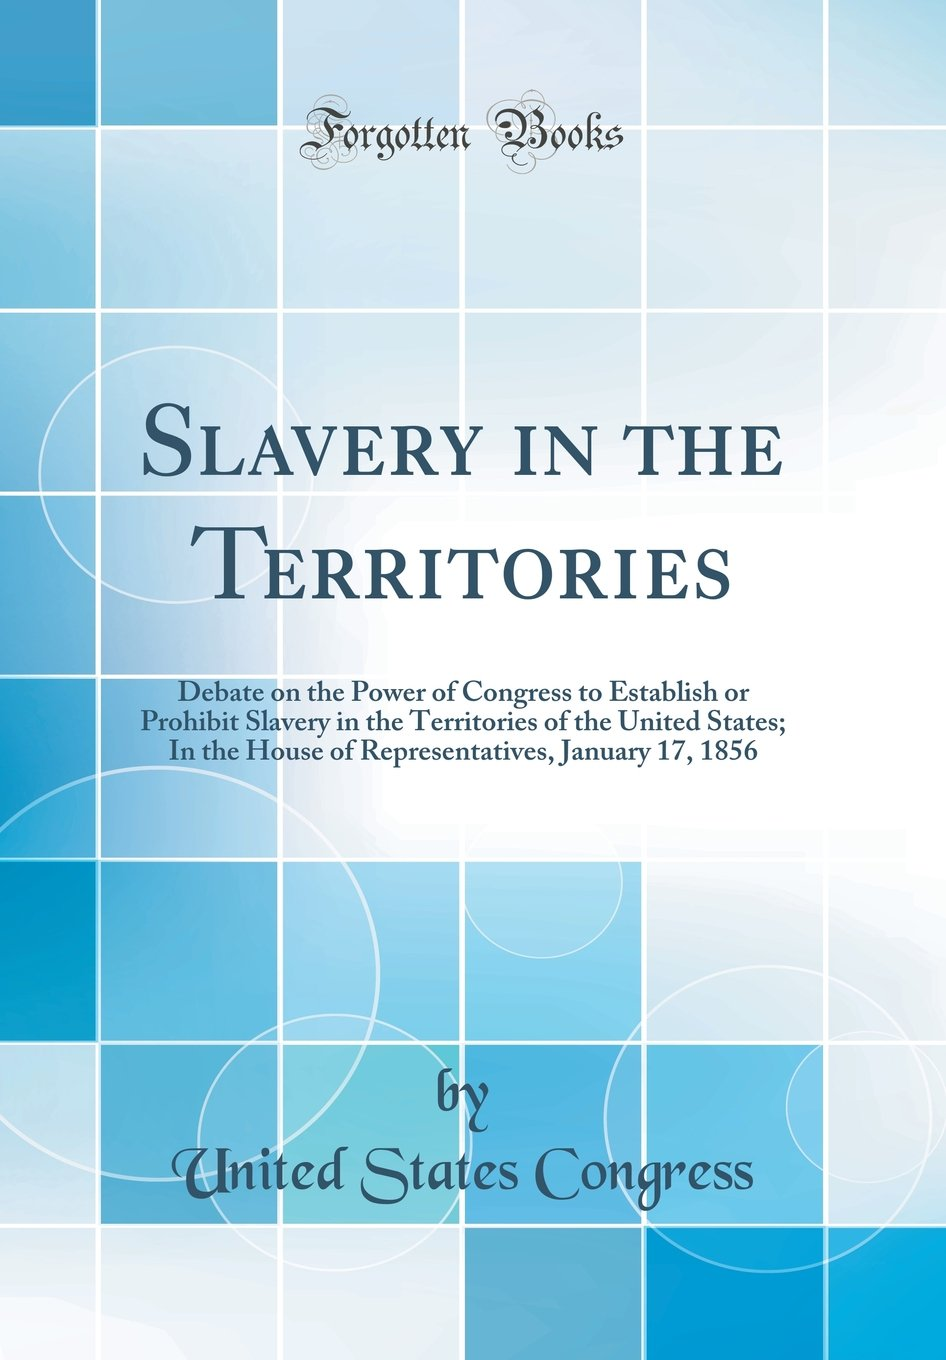 Slavery in the Territories: Debate on the Power of Congress to Establish or Prohibit Slavery in the Territories of the United States; In the House of ... January 17, 1856 (Classic Reprint) pdf